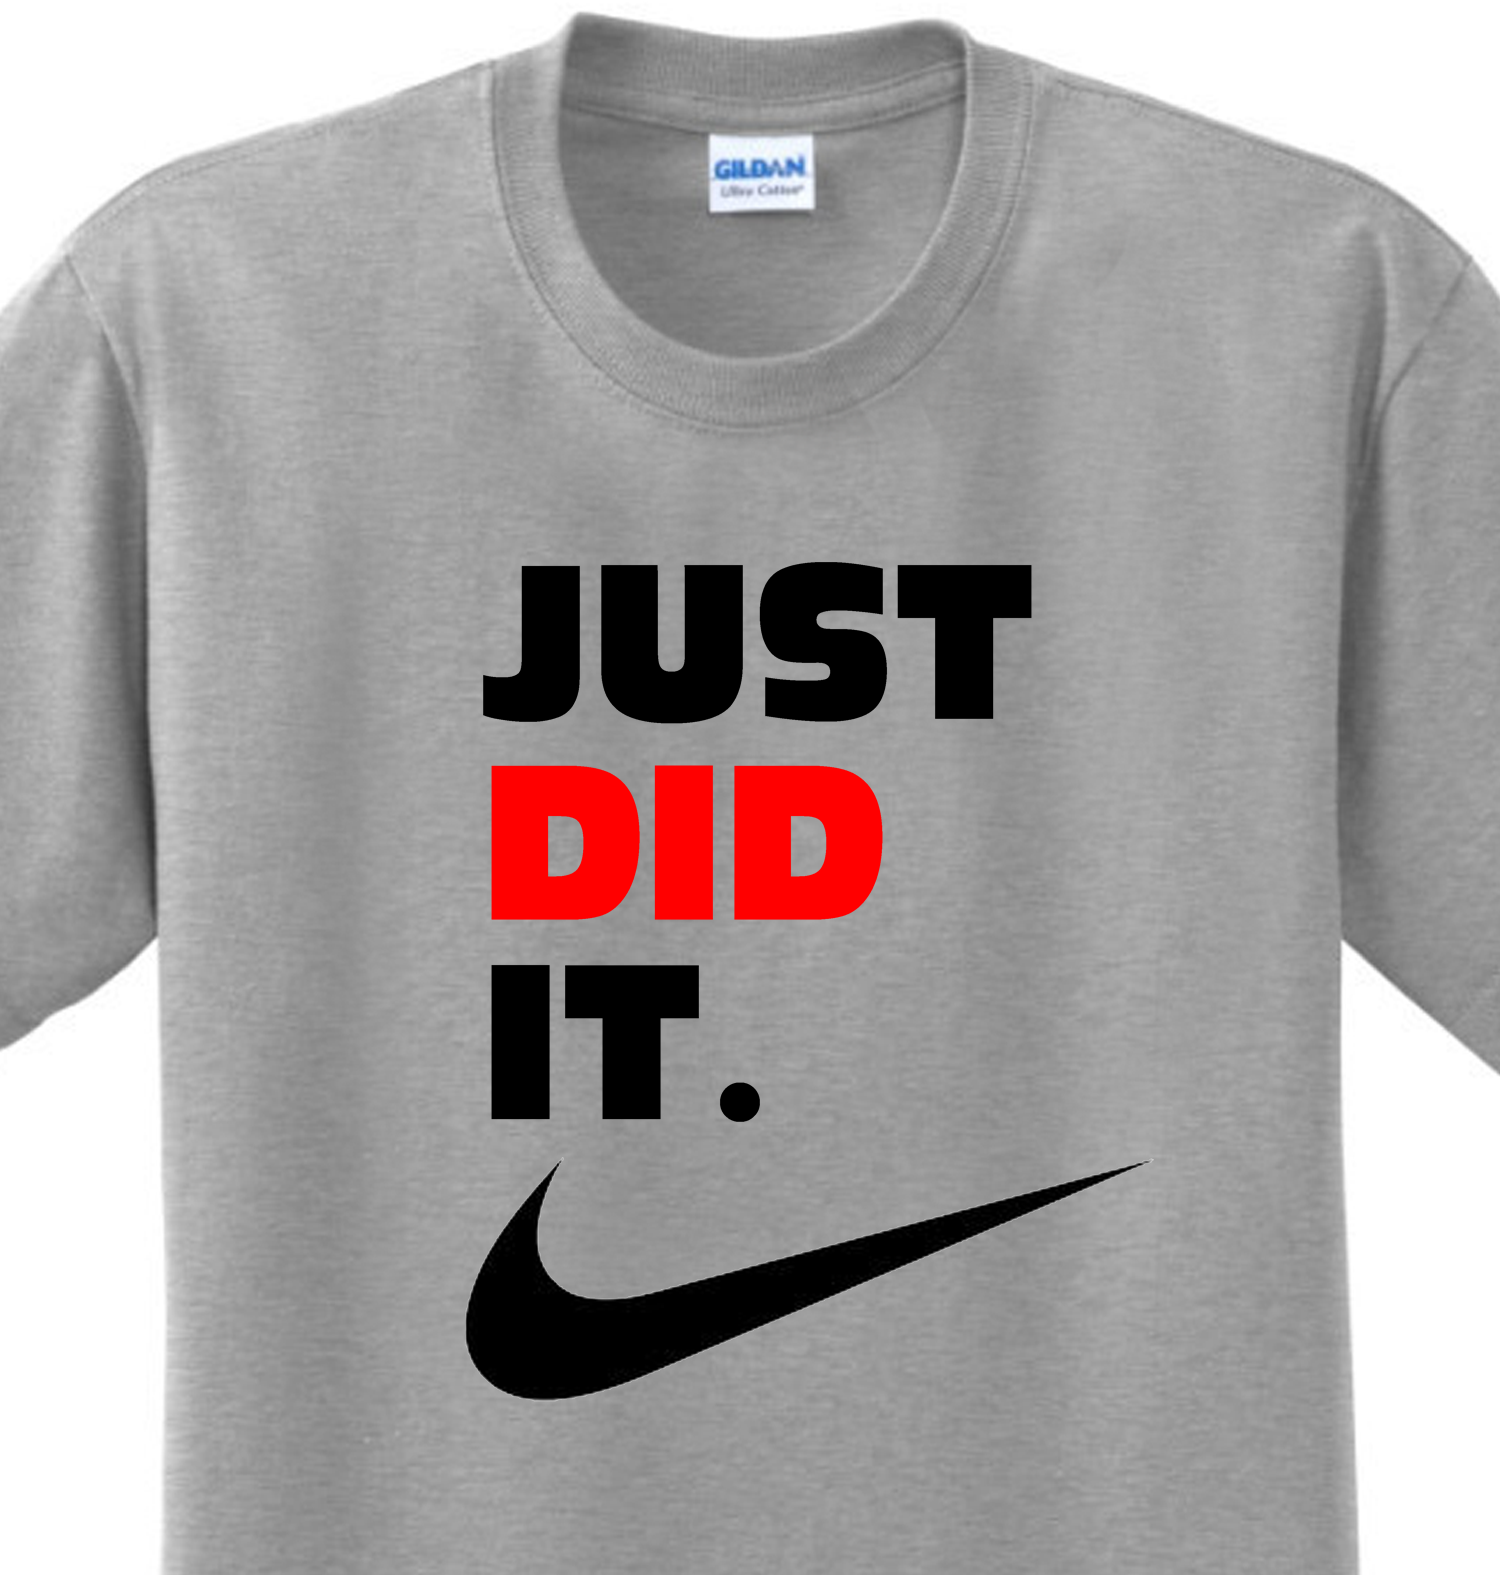 Design t shirt nike - All Our T Shirts Are High Quality Pre Shrunk 100 Cotton Blends We Stock Only Professionally Printed Items With No Transfers The Design Is Printed On The